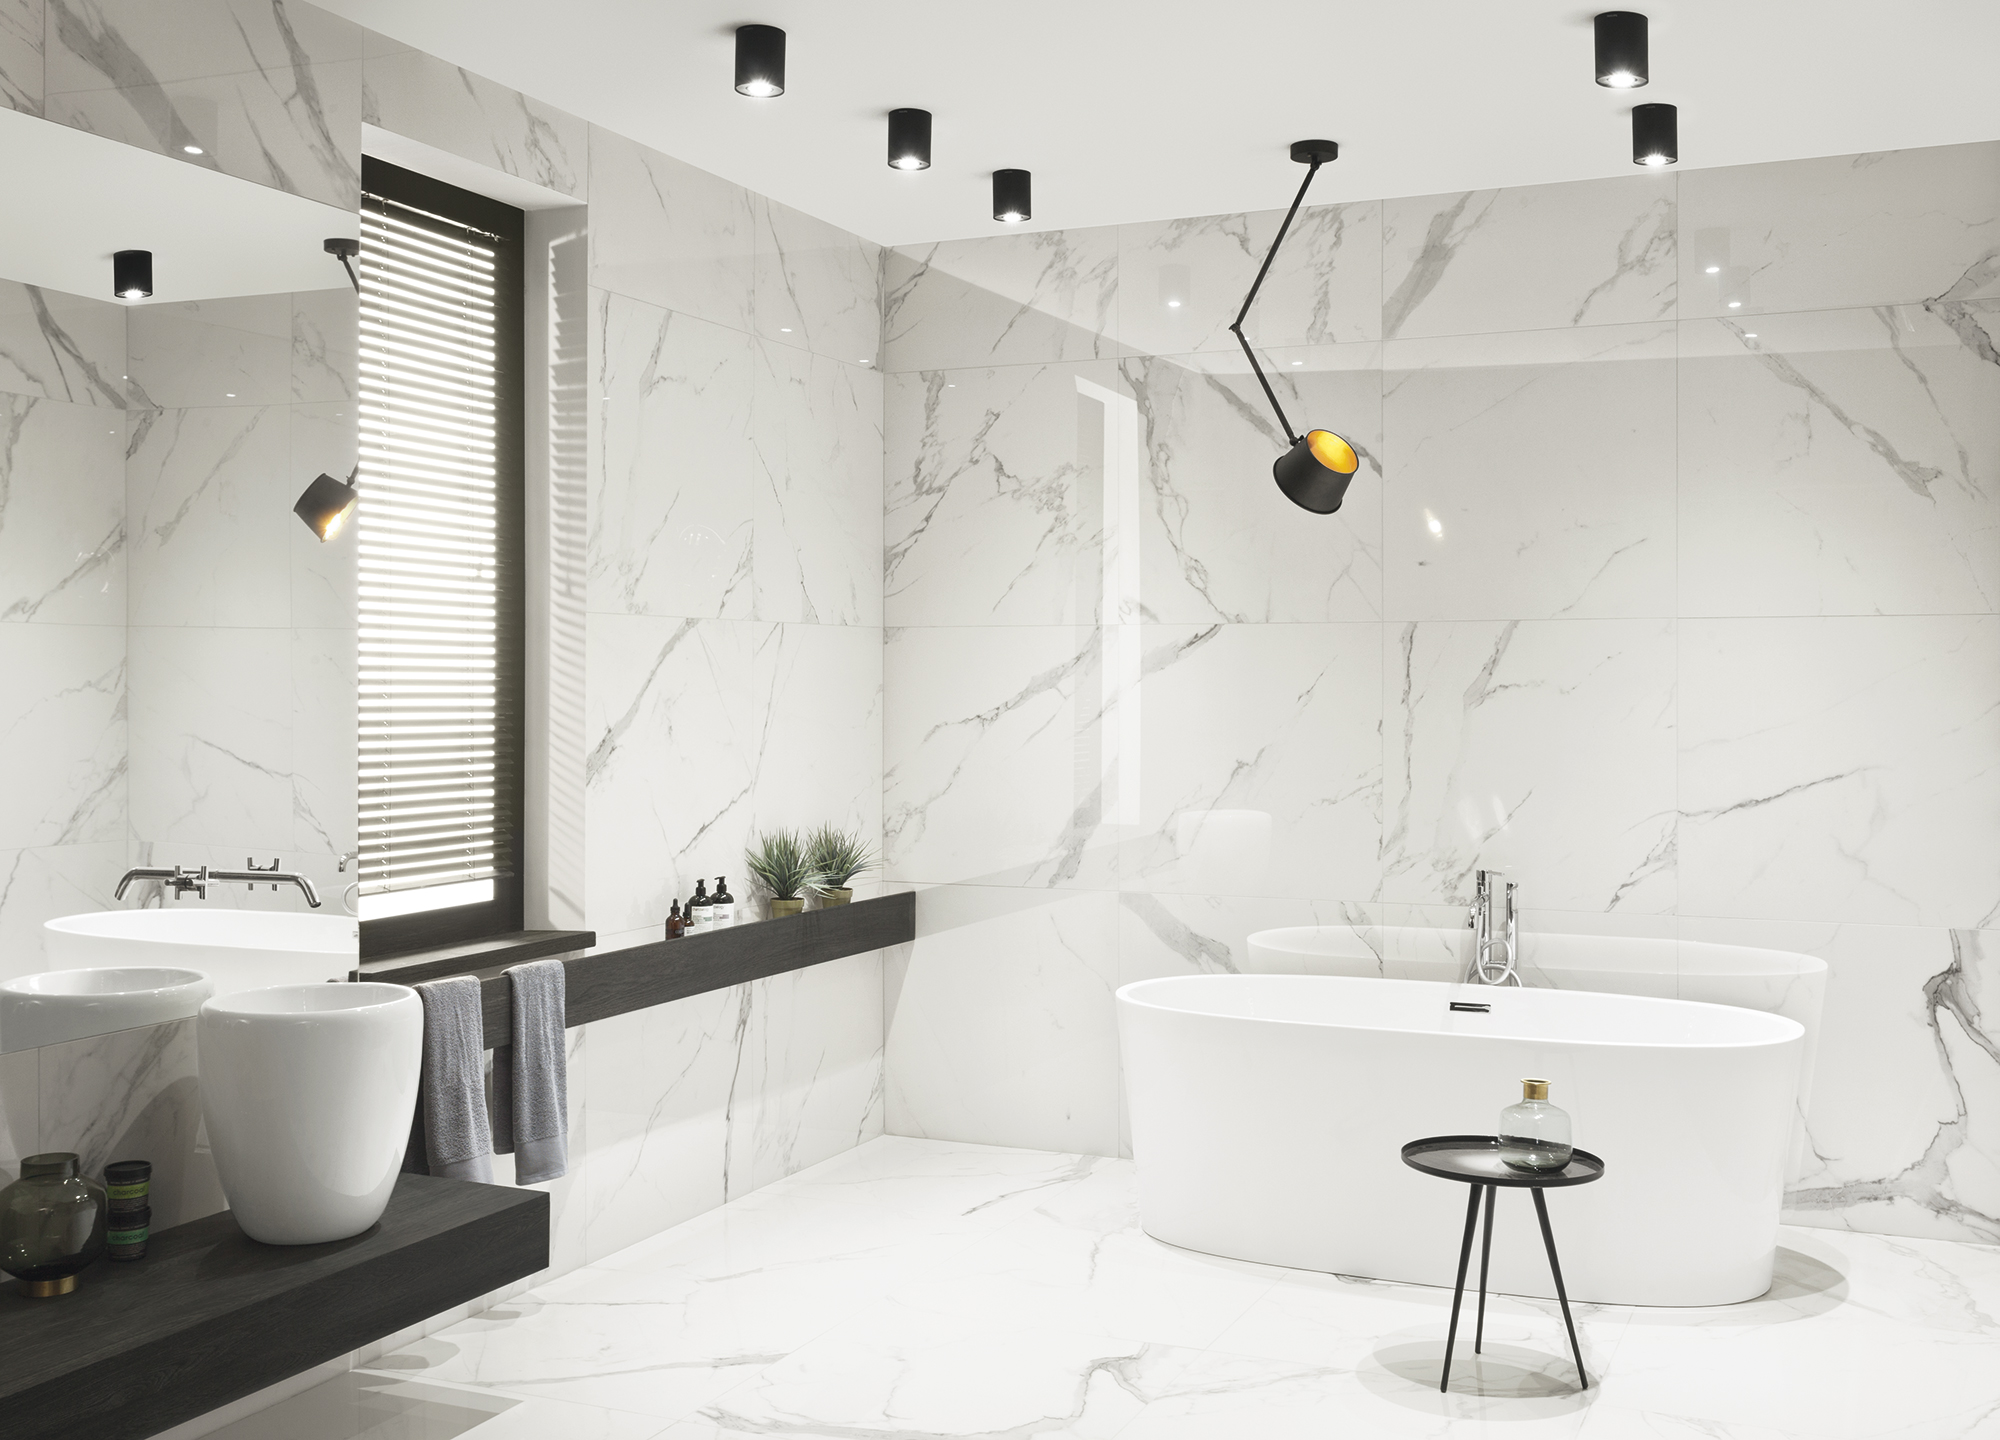 Grain And Groove Have Extended Their Range To Include Tiles Houseandhome Ie